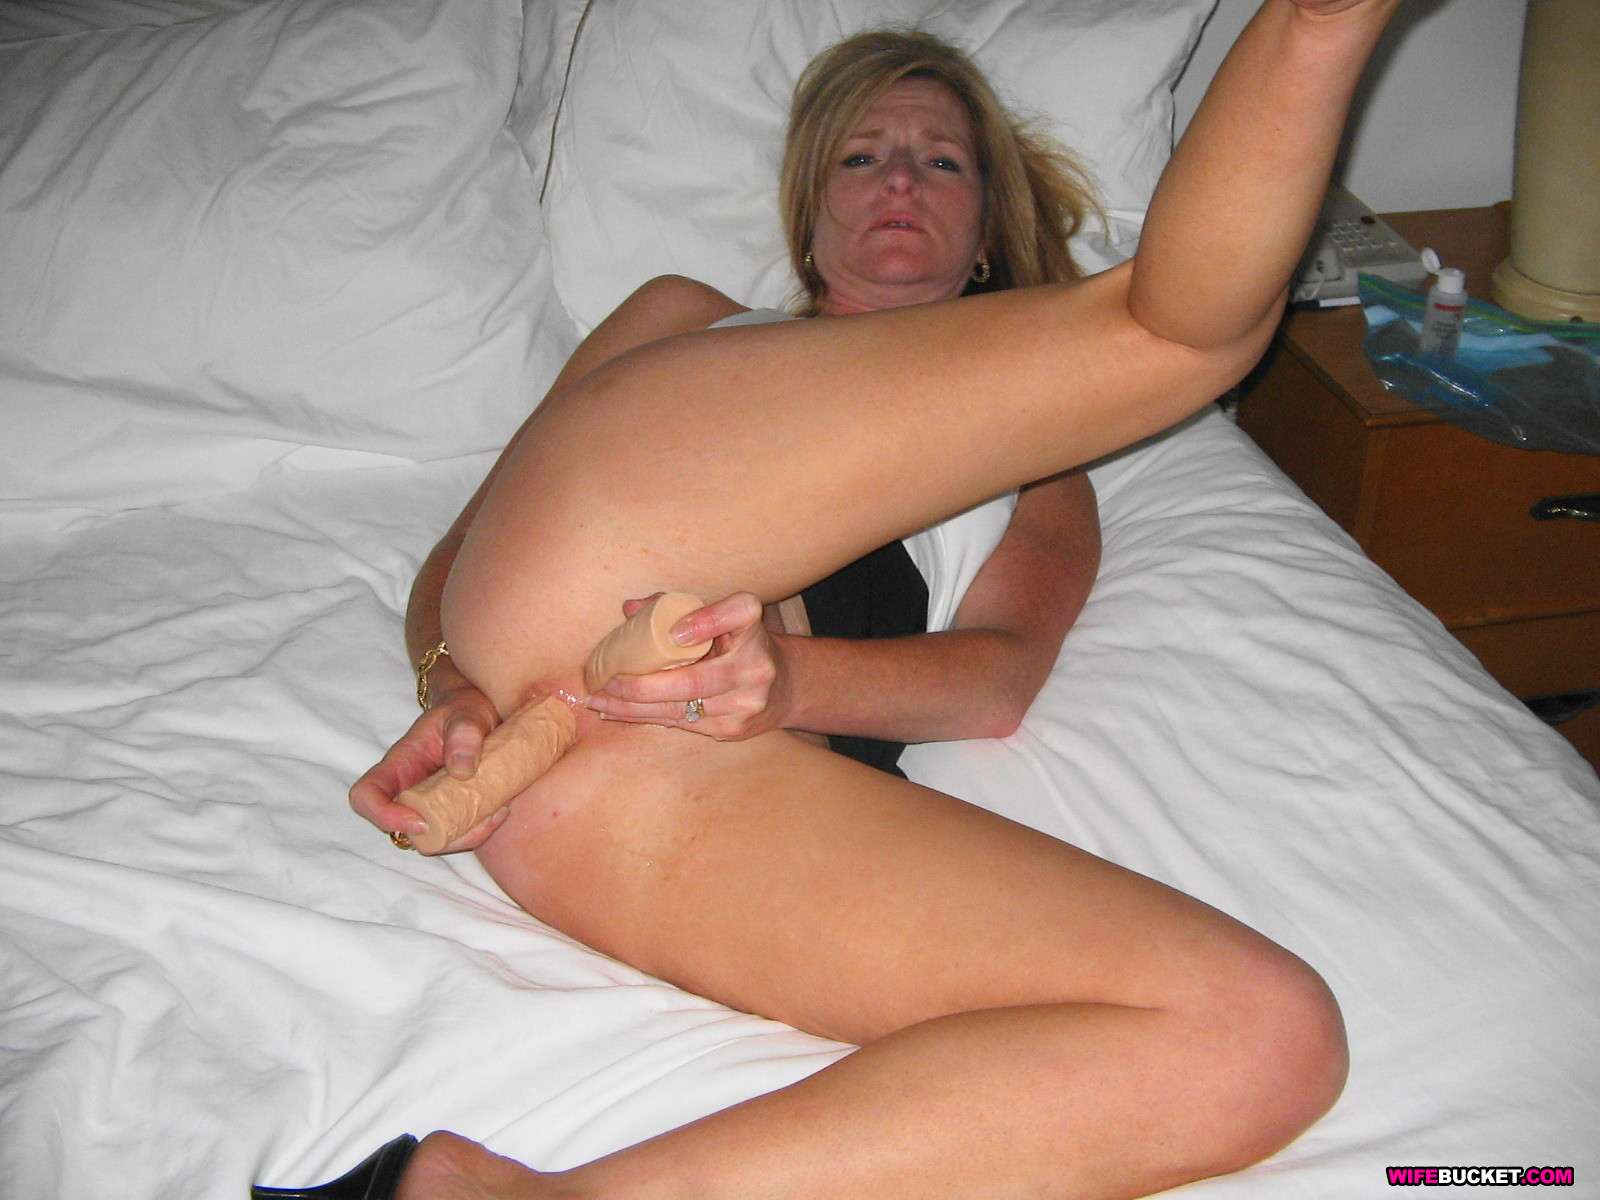 Probably, free amateur homemade real consider, that